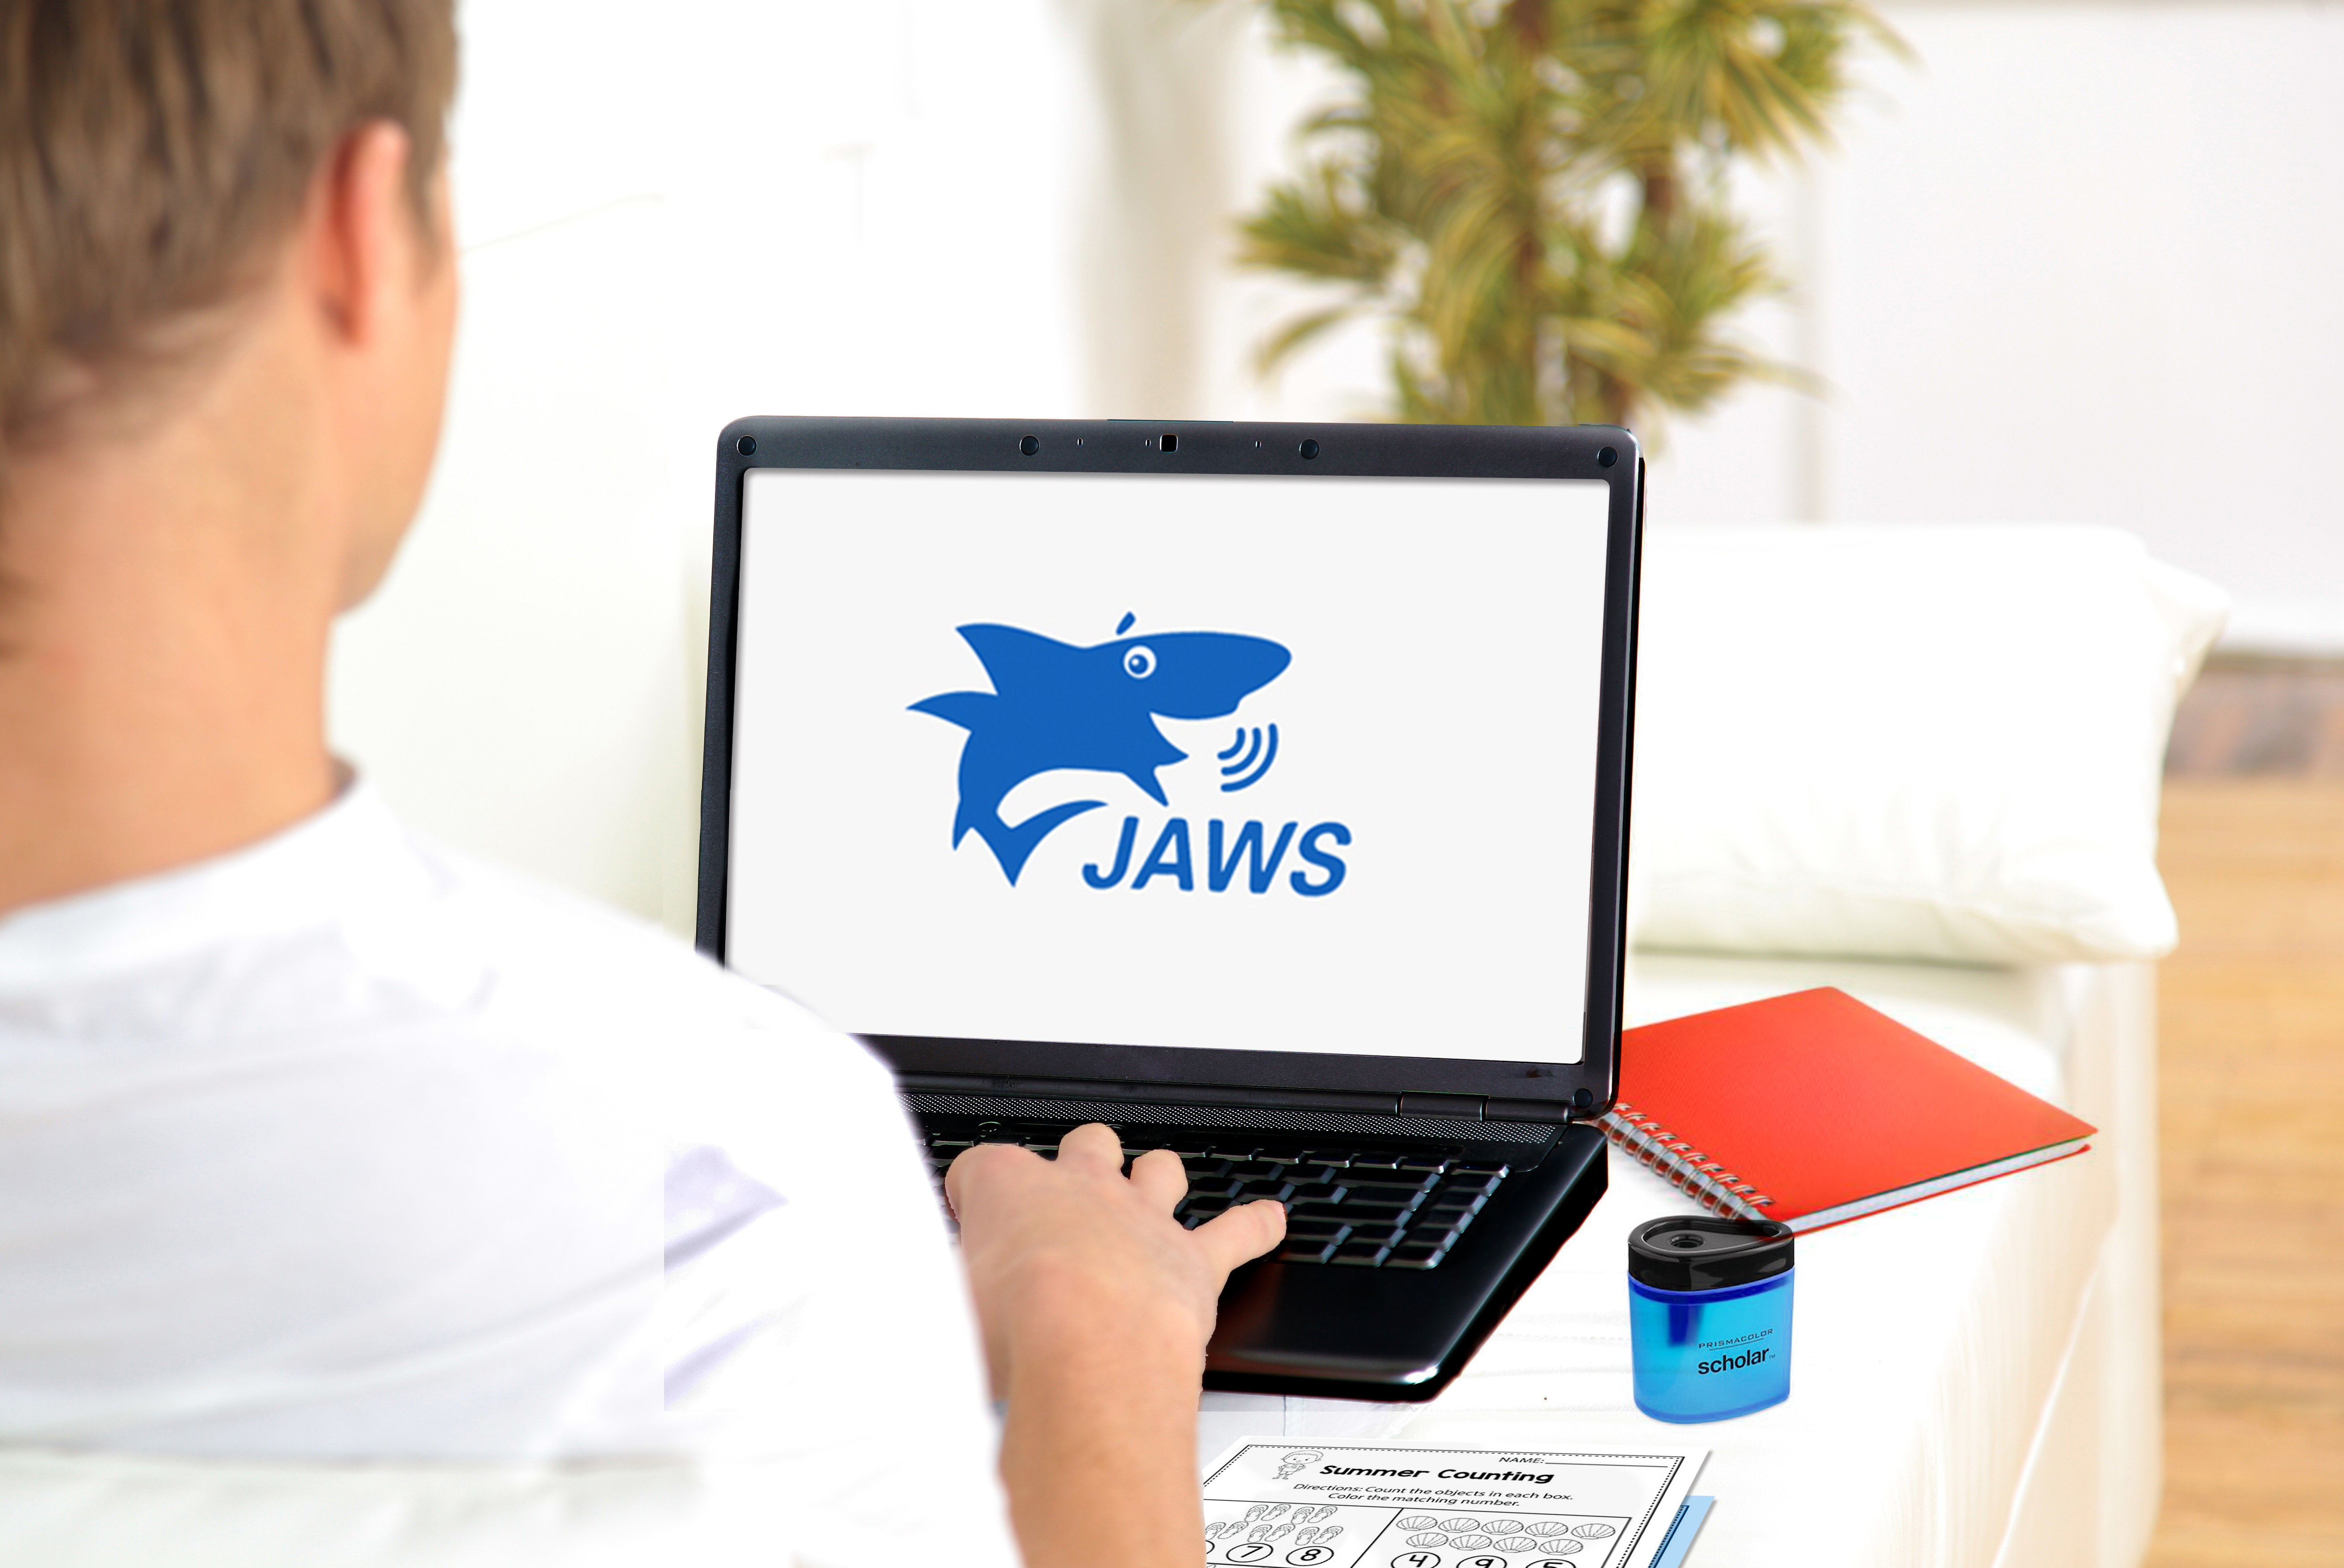 Student on computer with JAWS screen reader logo on screen